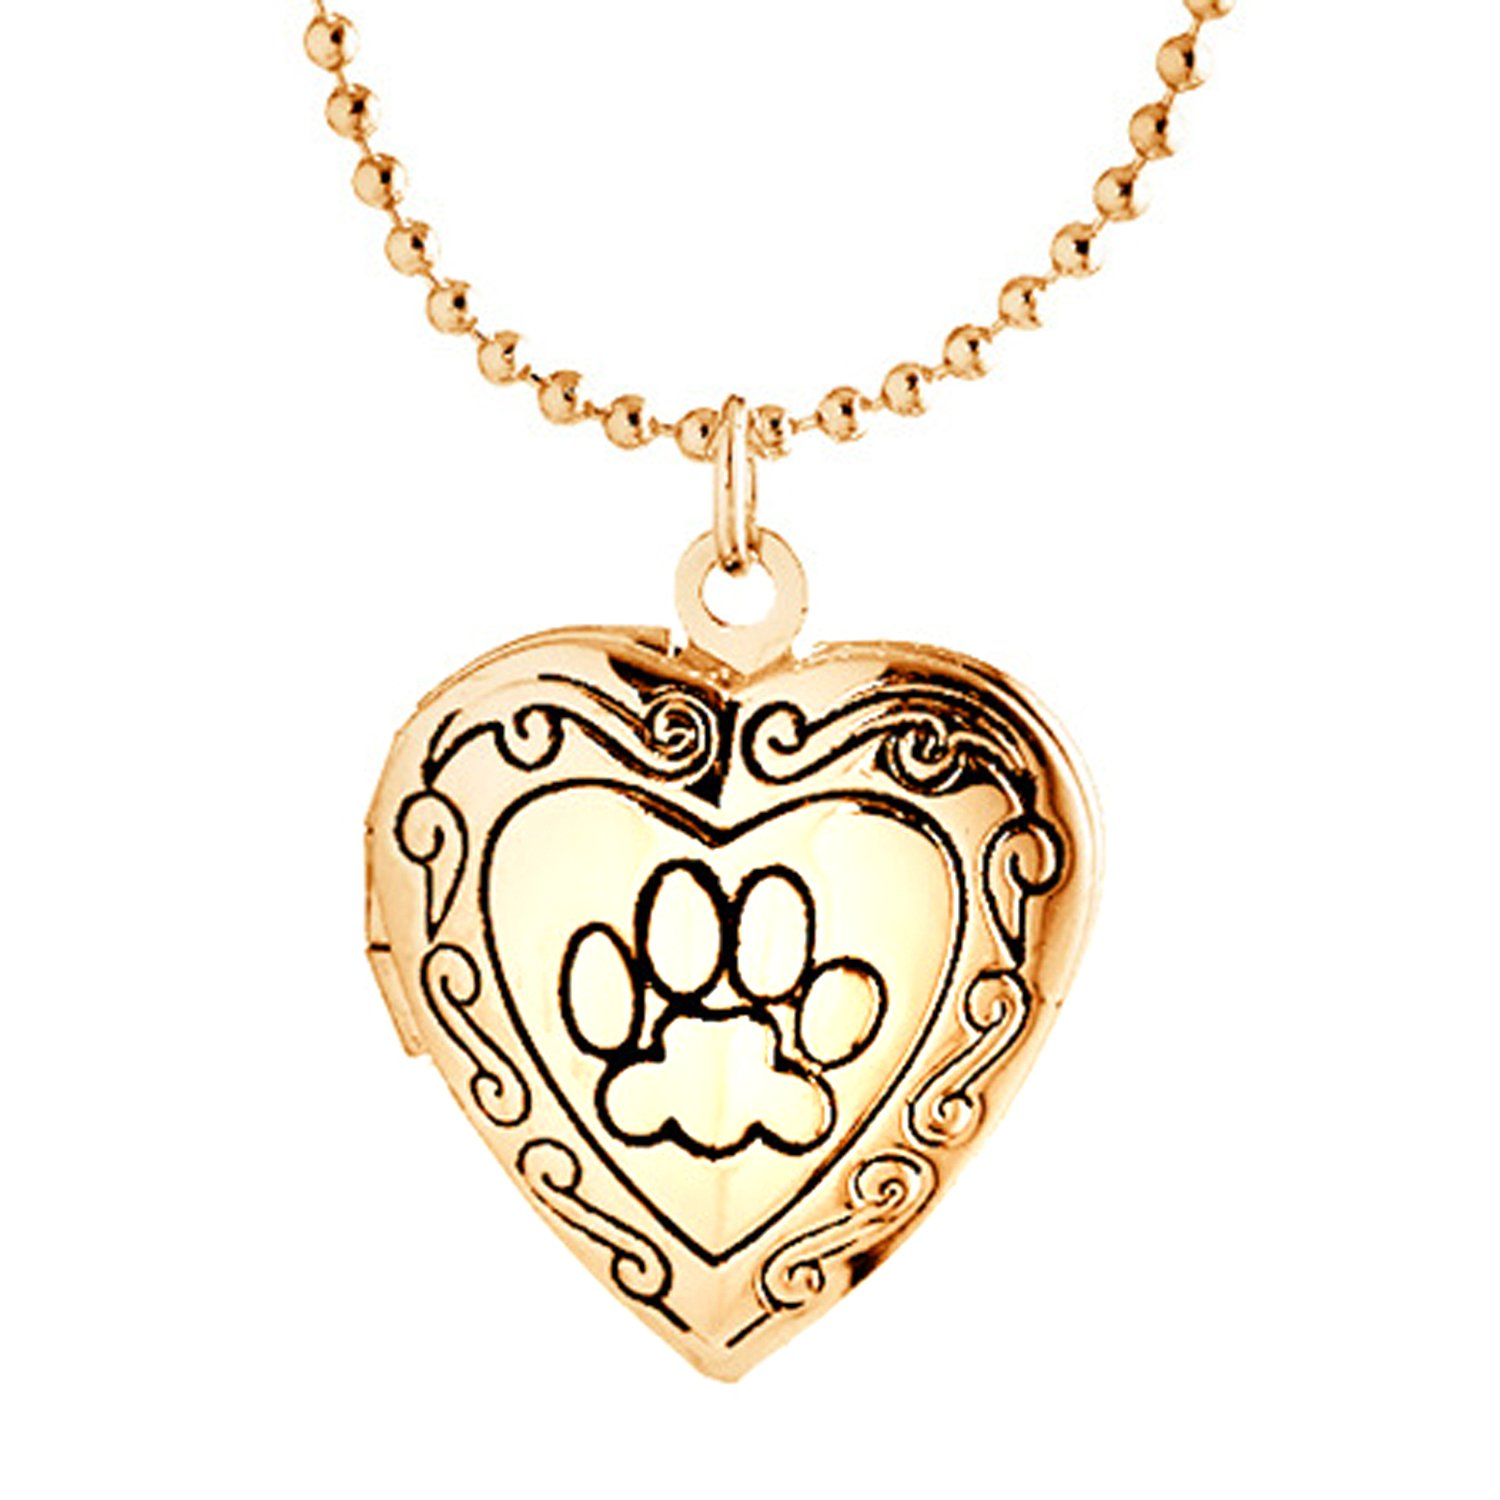 elle girls accessories investment lockets jewelry best fashion locket